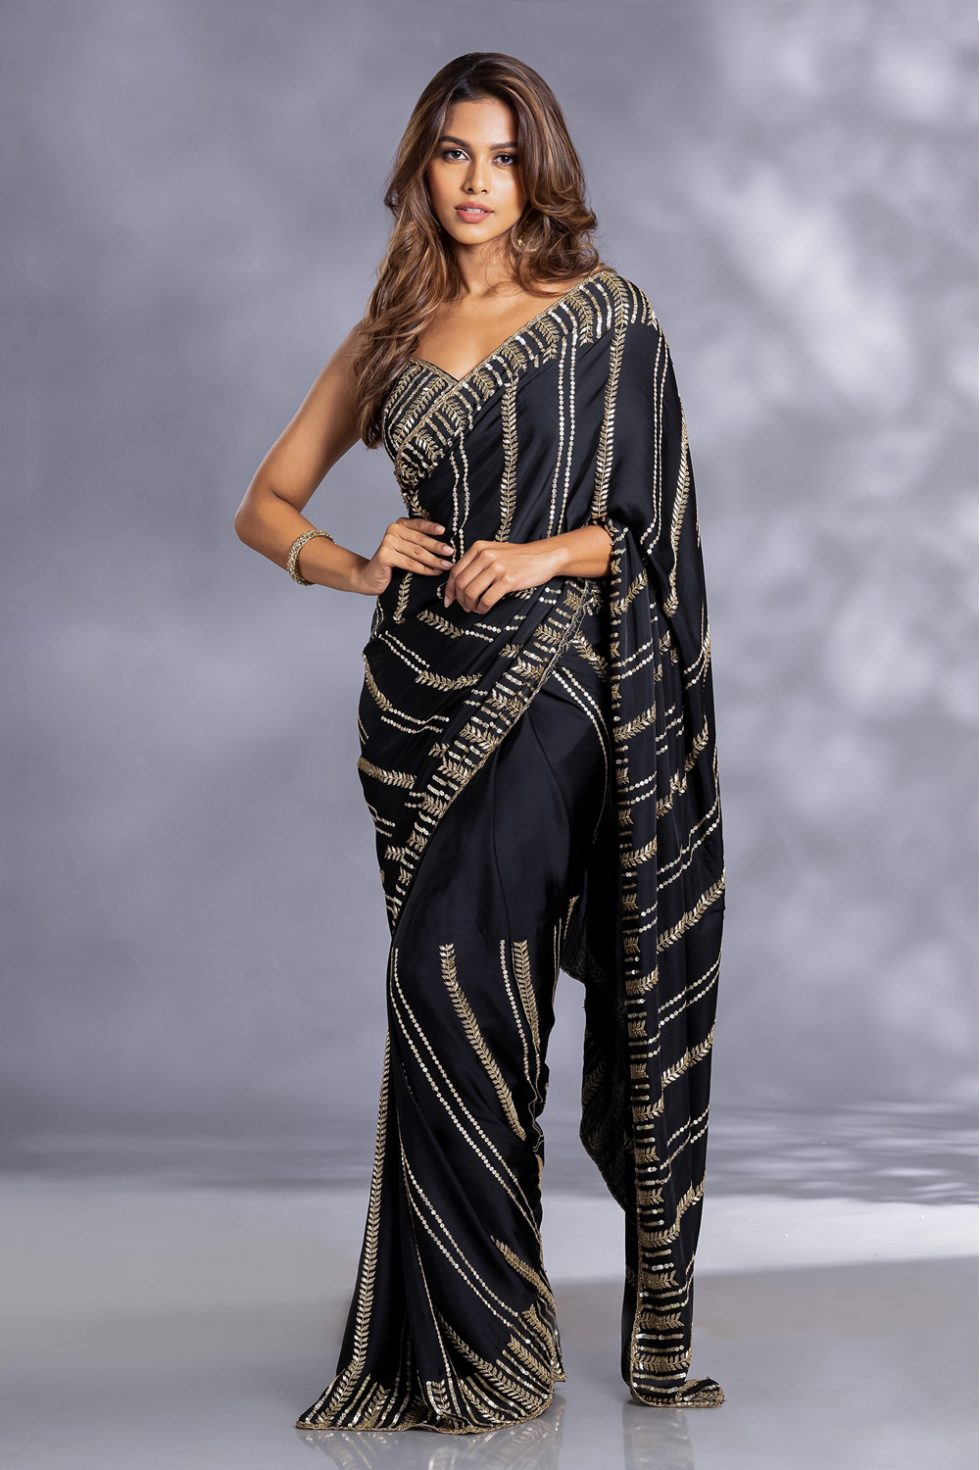 Raven black classic cocktail saree with dull gold zardozi embroidery paired with a matching hand embroidered blouse and gold tassels.